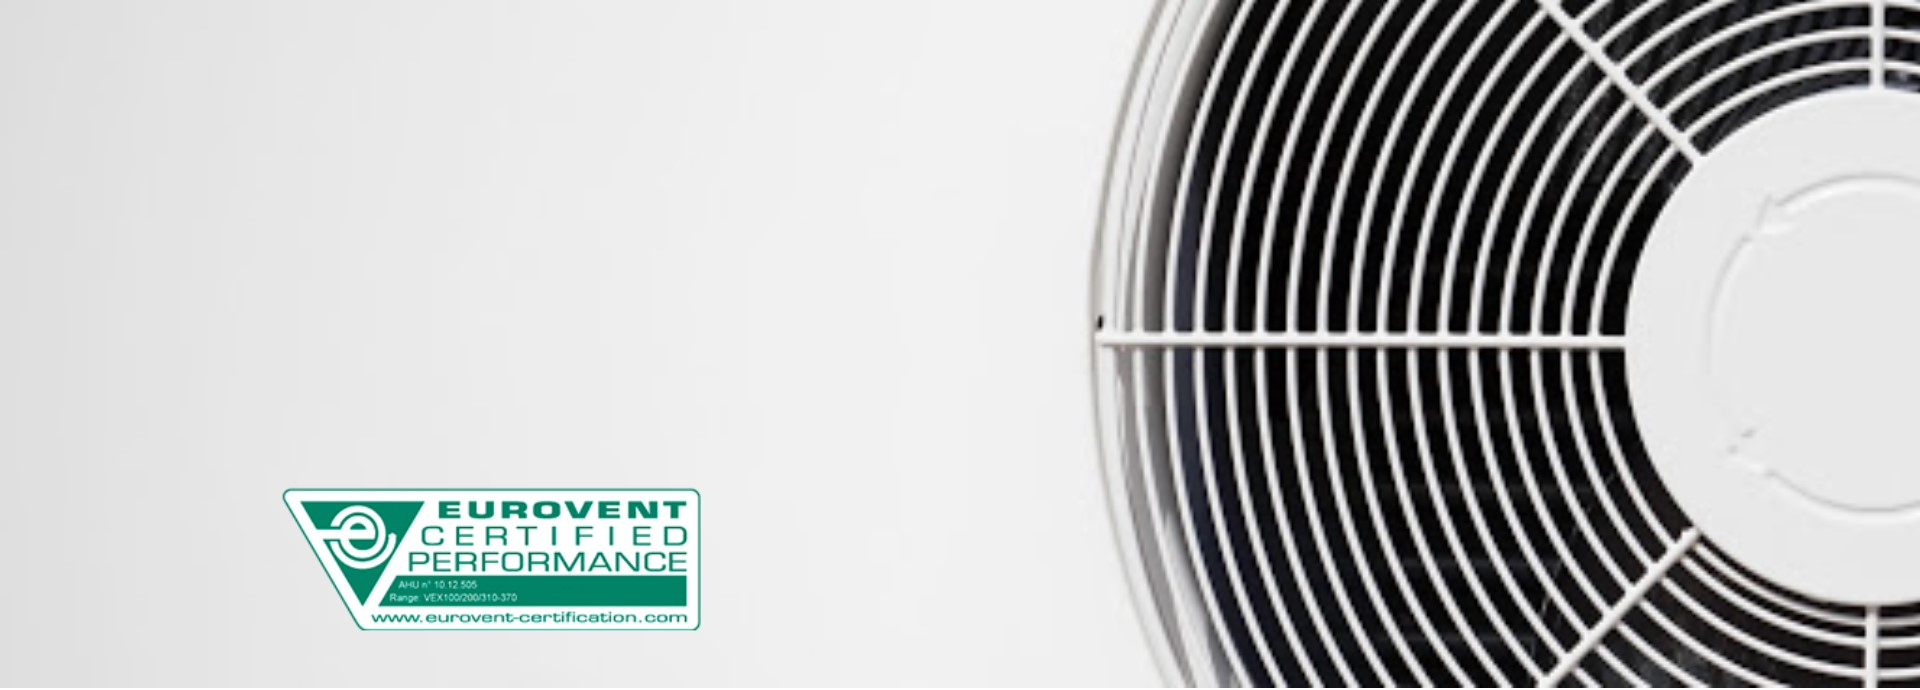 What is Eurovent's certificate? Everything Air-conditioner consumers need to know